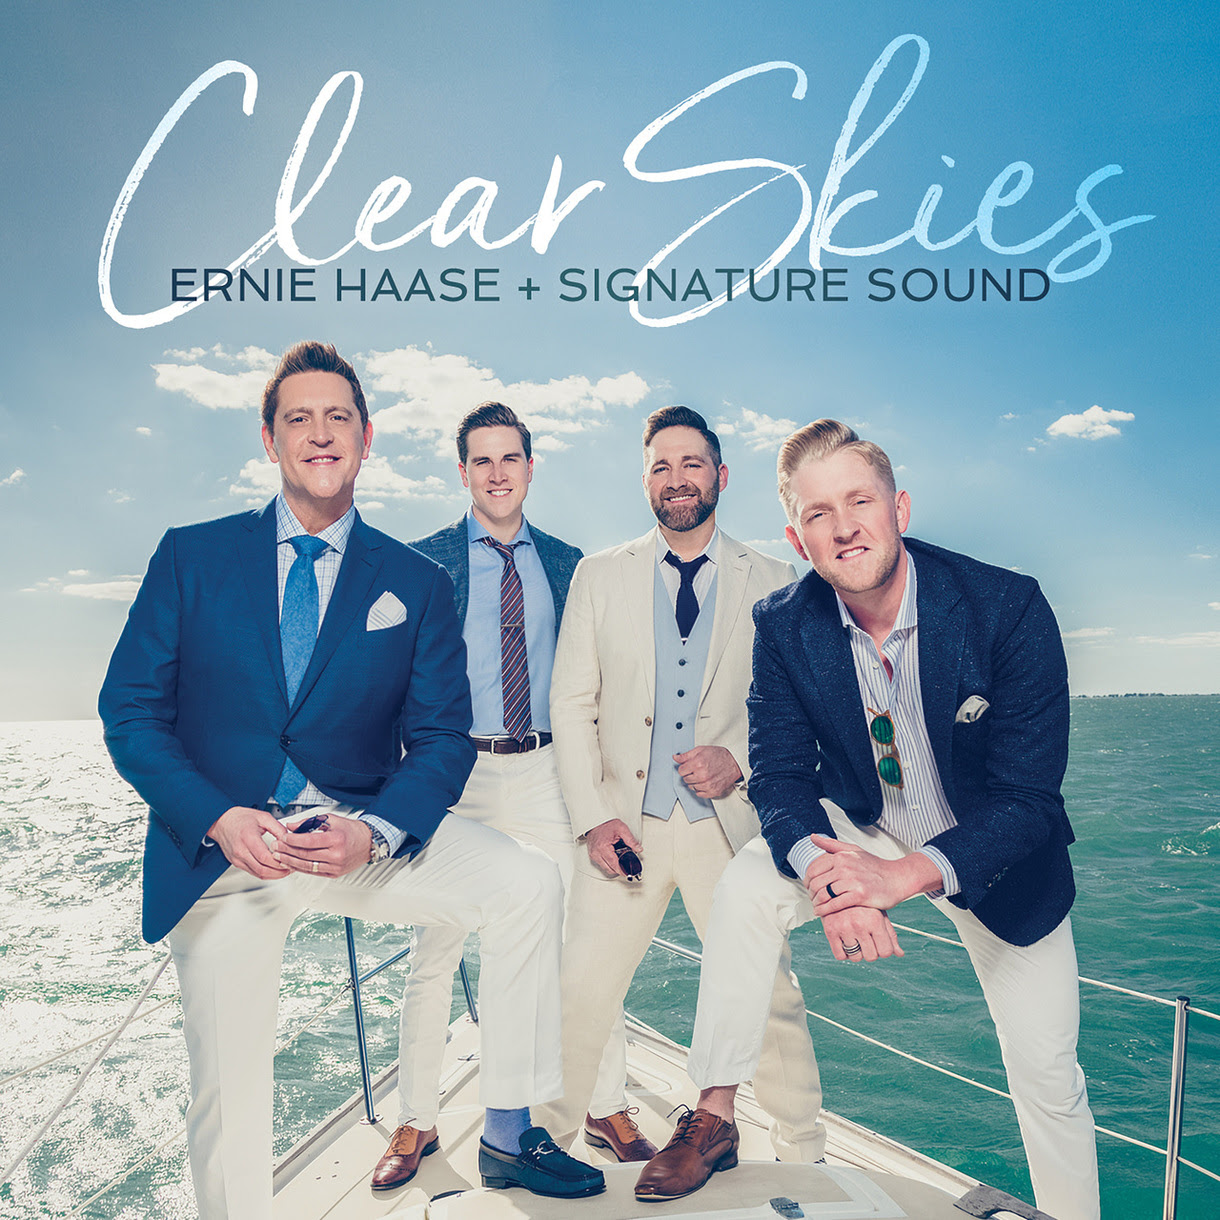 Ernie Haase and Signature Sound Garners 2019 GRAMMY (R) Nomination